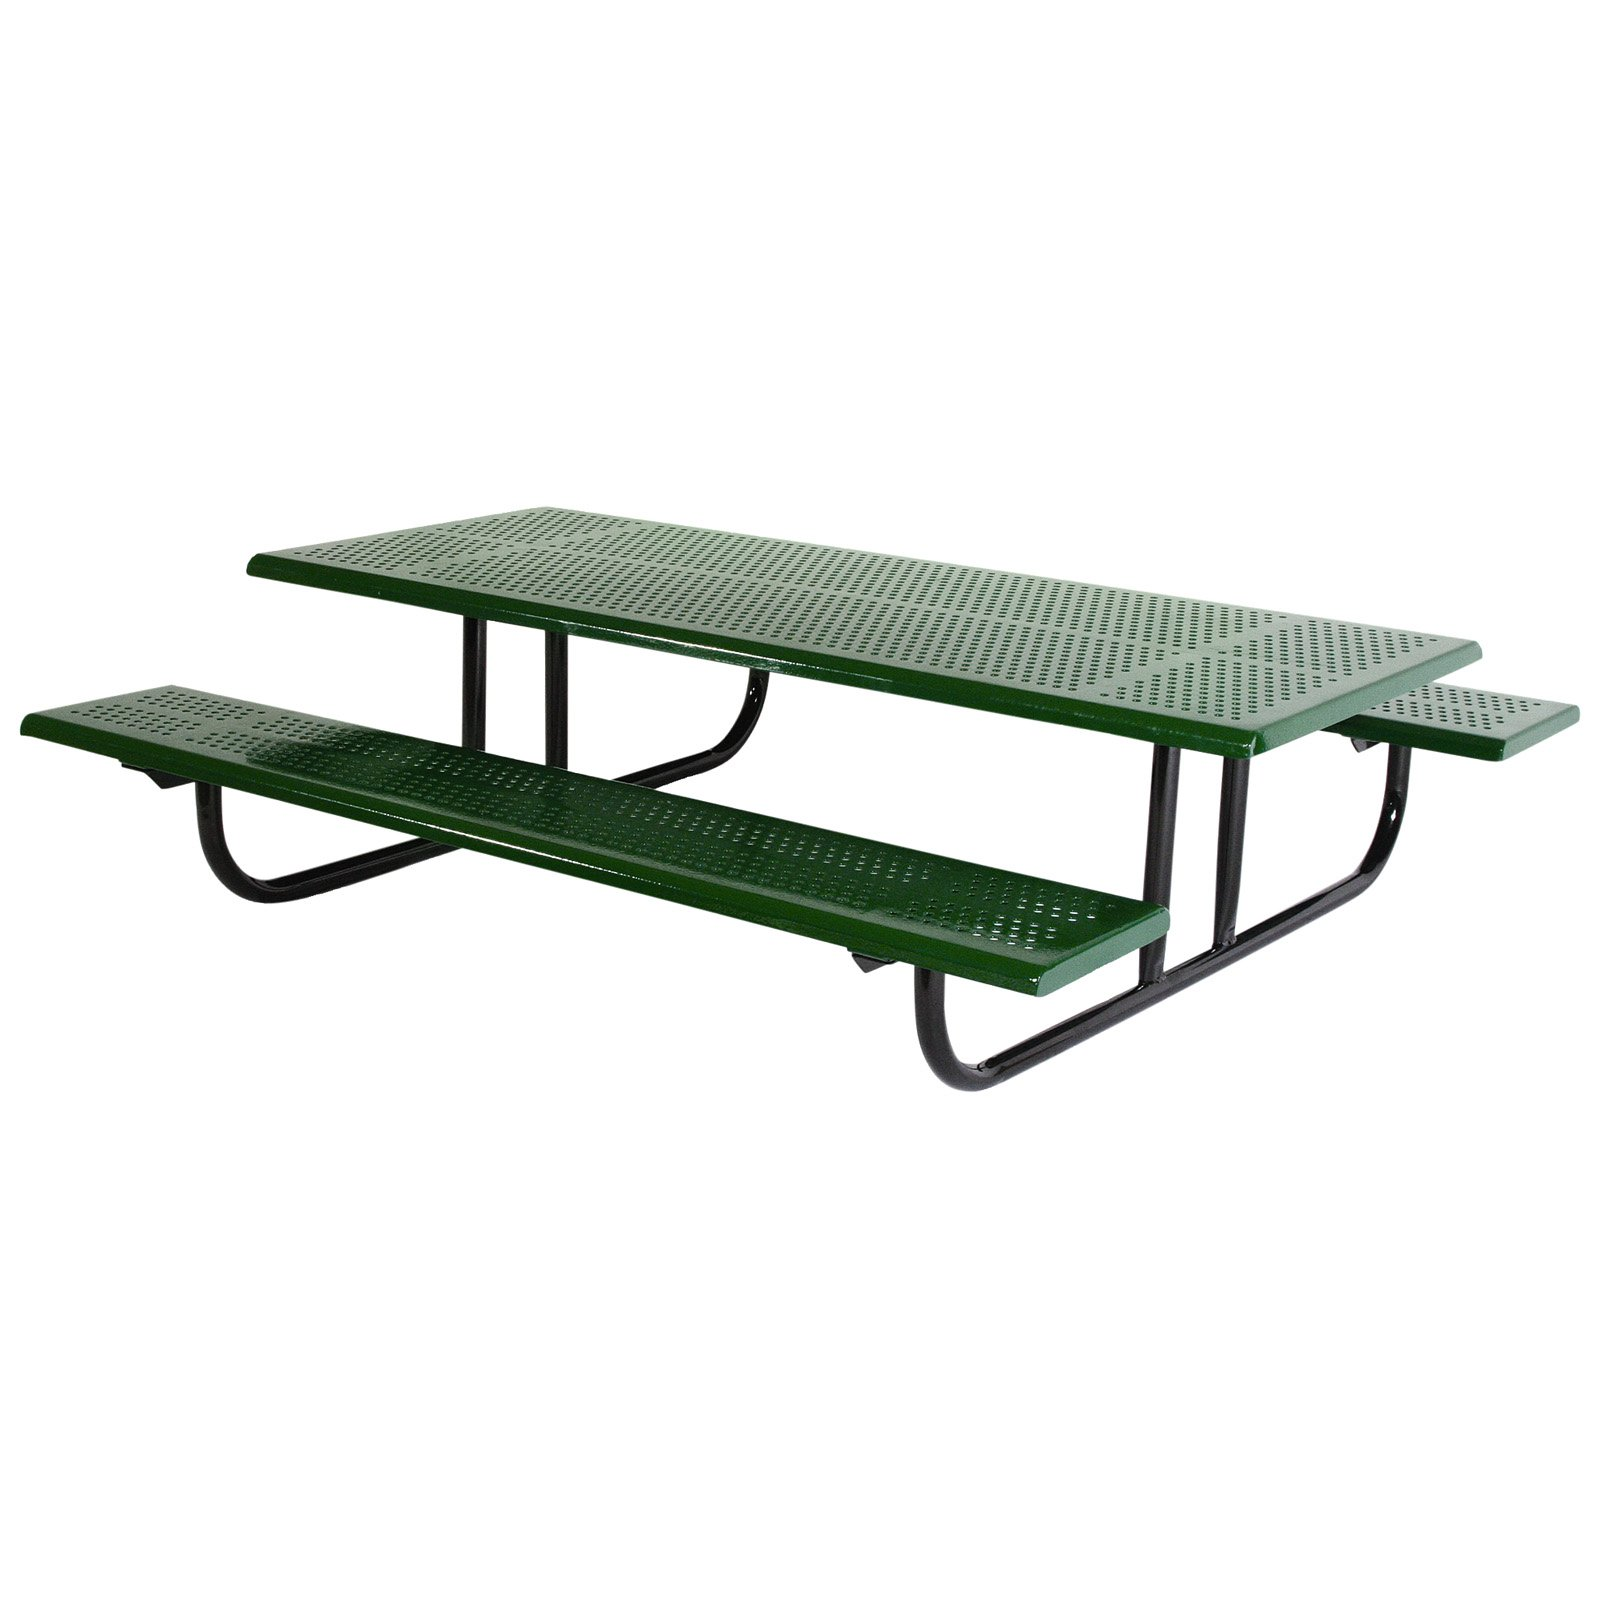 SportsPlay Early Years 6 ft. Perforated Thermoplastic Steel Picnic Table-Black-Black